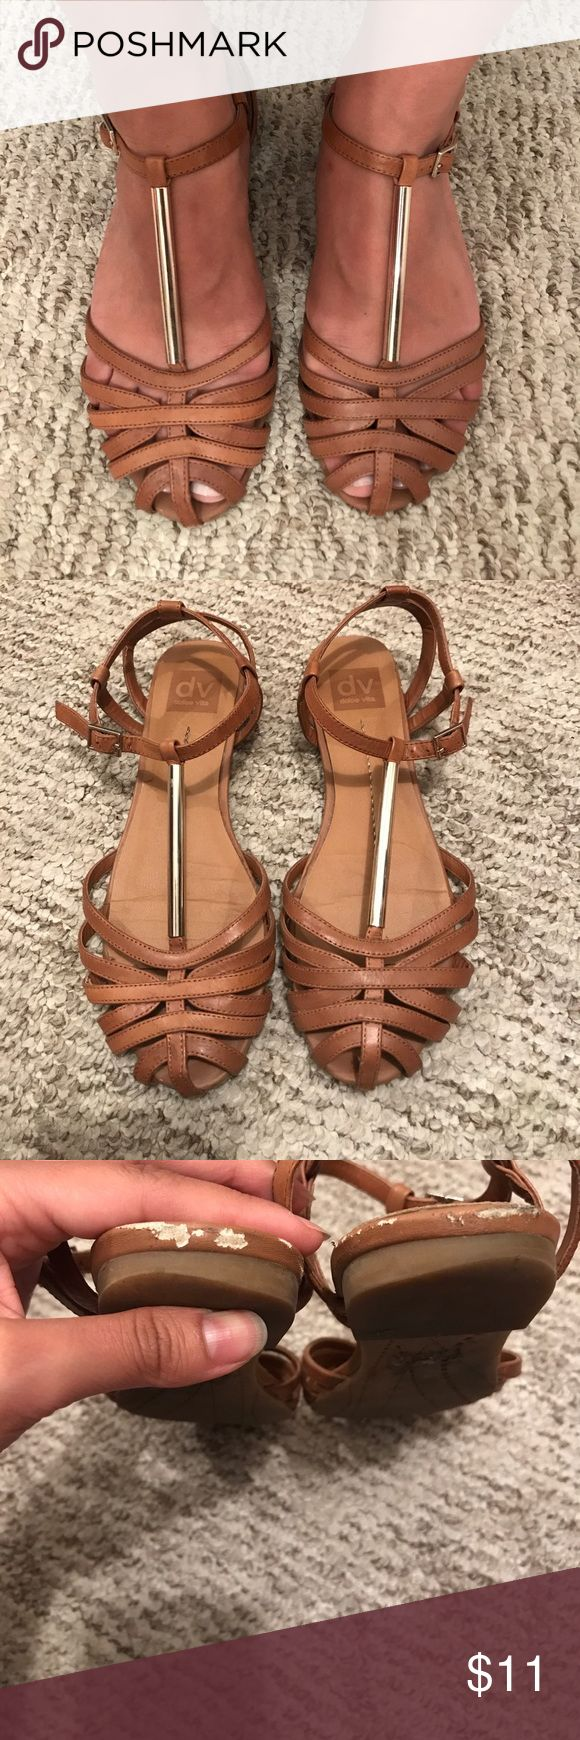 🚩DONATING 9/30 🚩 Dolce vita caged camel sandals Super cute mod/retro style sandal. Previously loved. In used condition as seen in photos. Price reflects this. True to size. Donating these if don't sell in a month - (donating on 9/30/17) DV by Dolce Vita Shoes Sandals